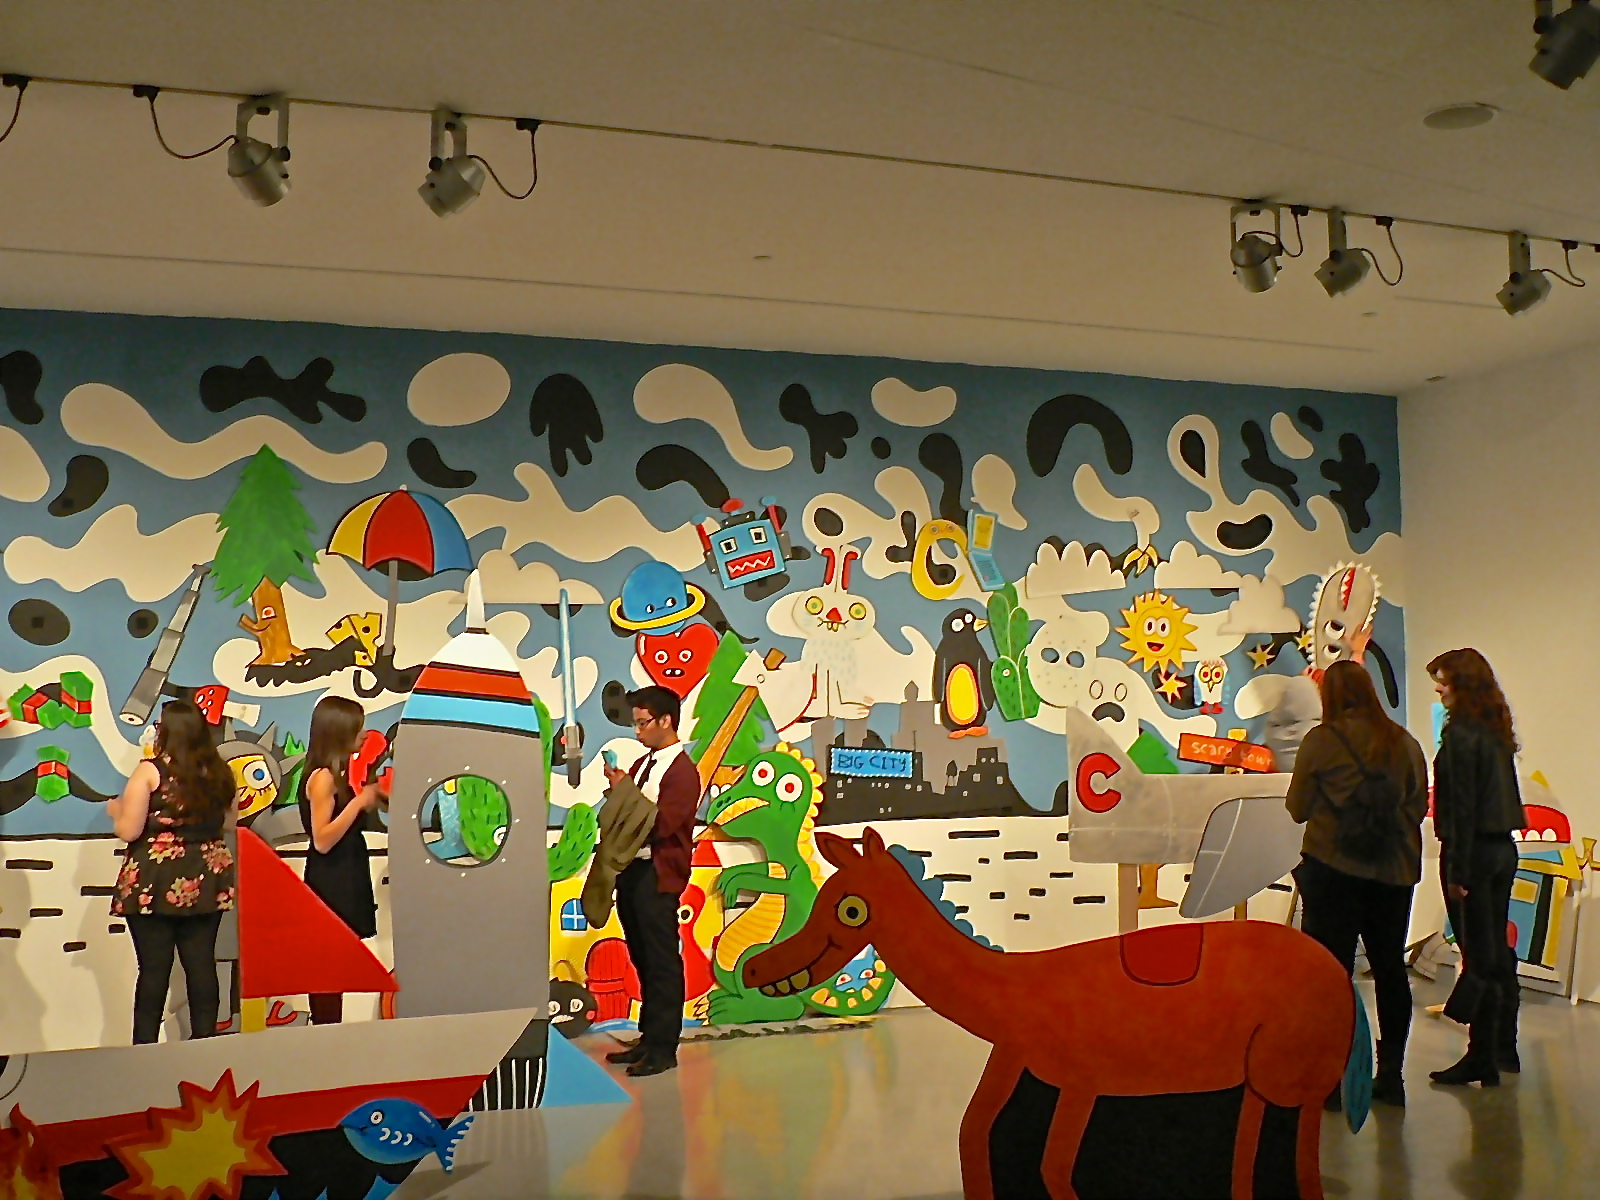 Artist Jon Burgerman creates film set-inspired installation for CAC Cincy